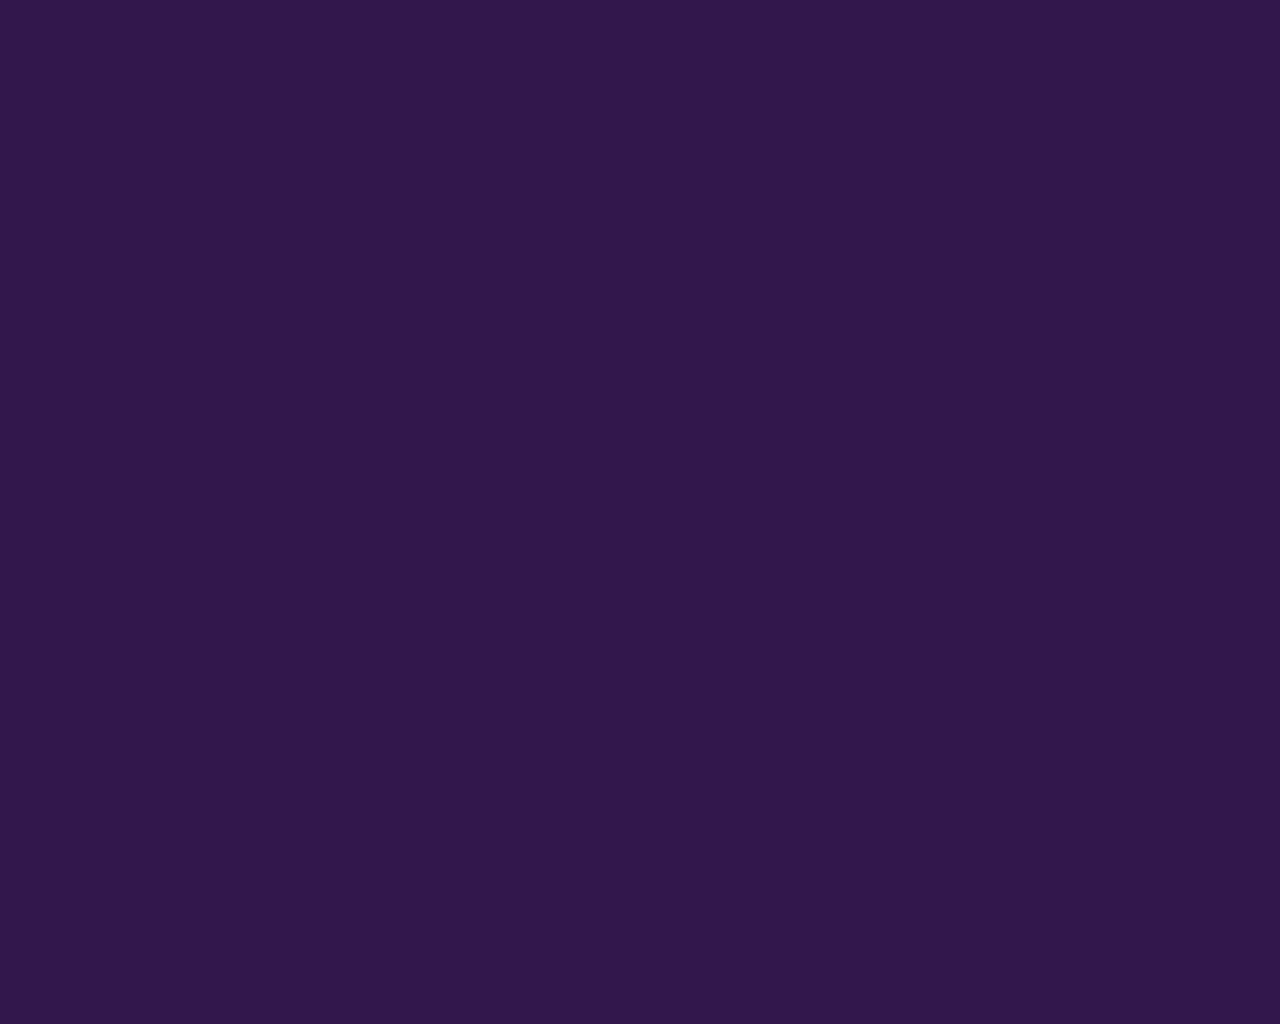 1280x1024 Russian Violet Solid Color Background